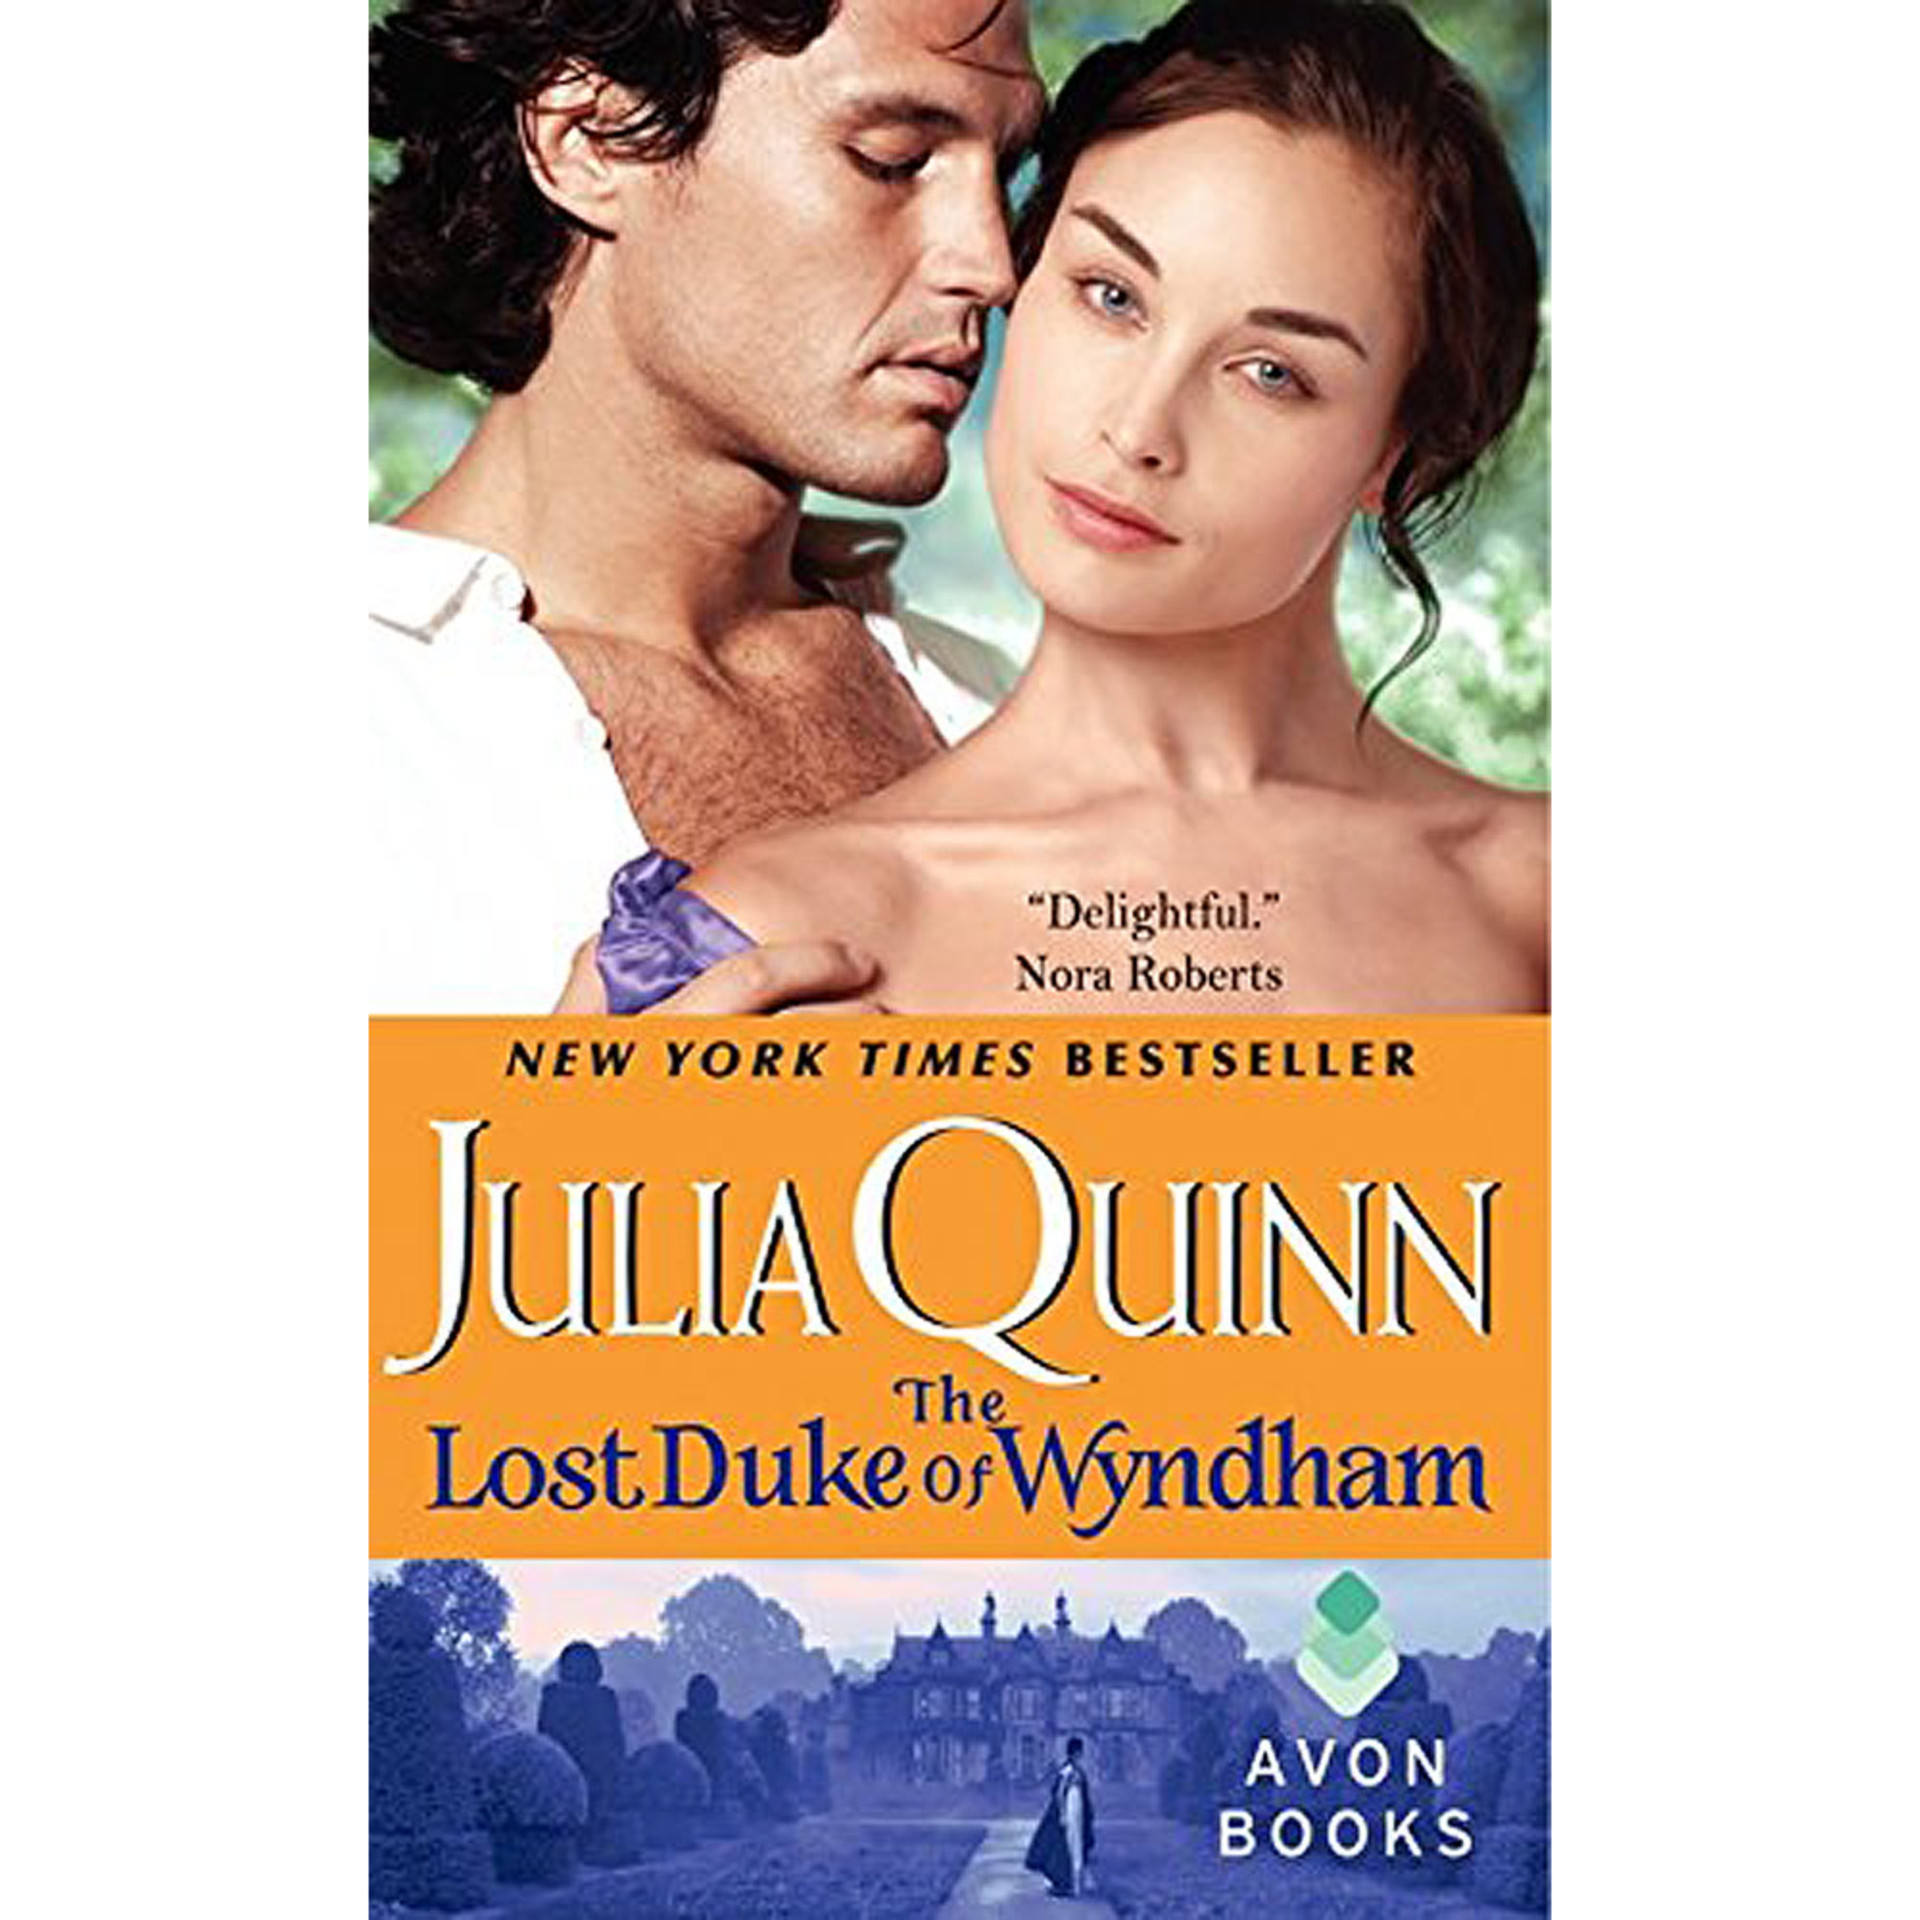 The Lost Duke Of Wyndham by Julia Quinn